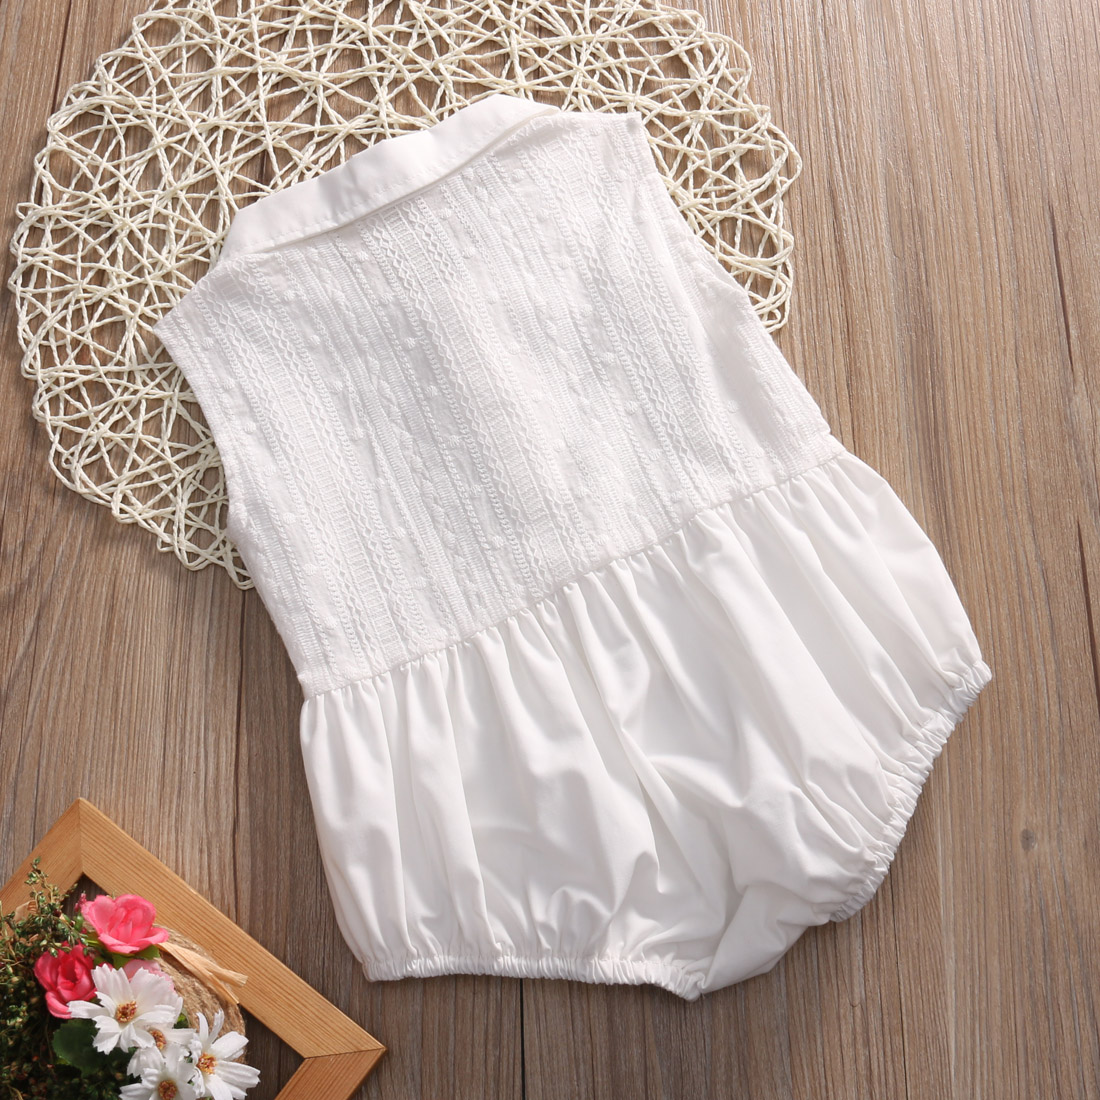 8bc49d35bb88 White Bodysuit Cute Baby Girl Sleeveless Bodysuit Romper Jumpsuit One-Pieces  Outfits